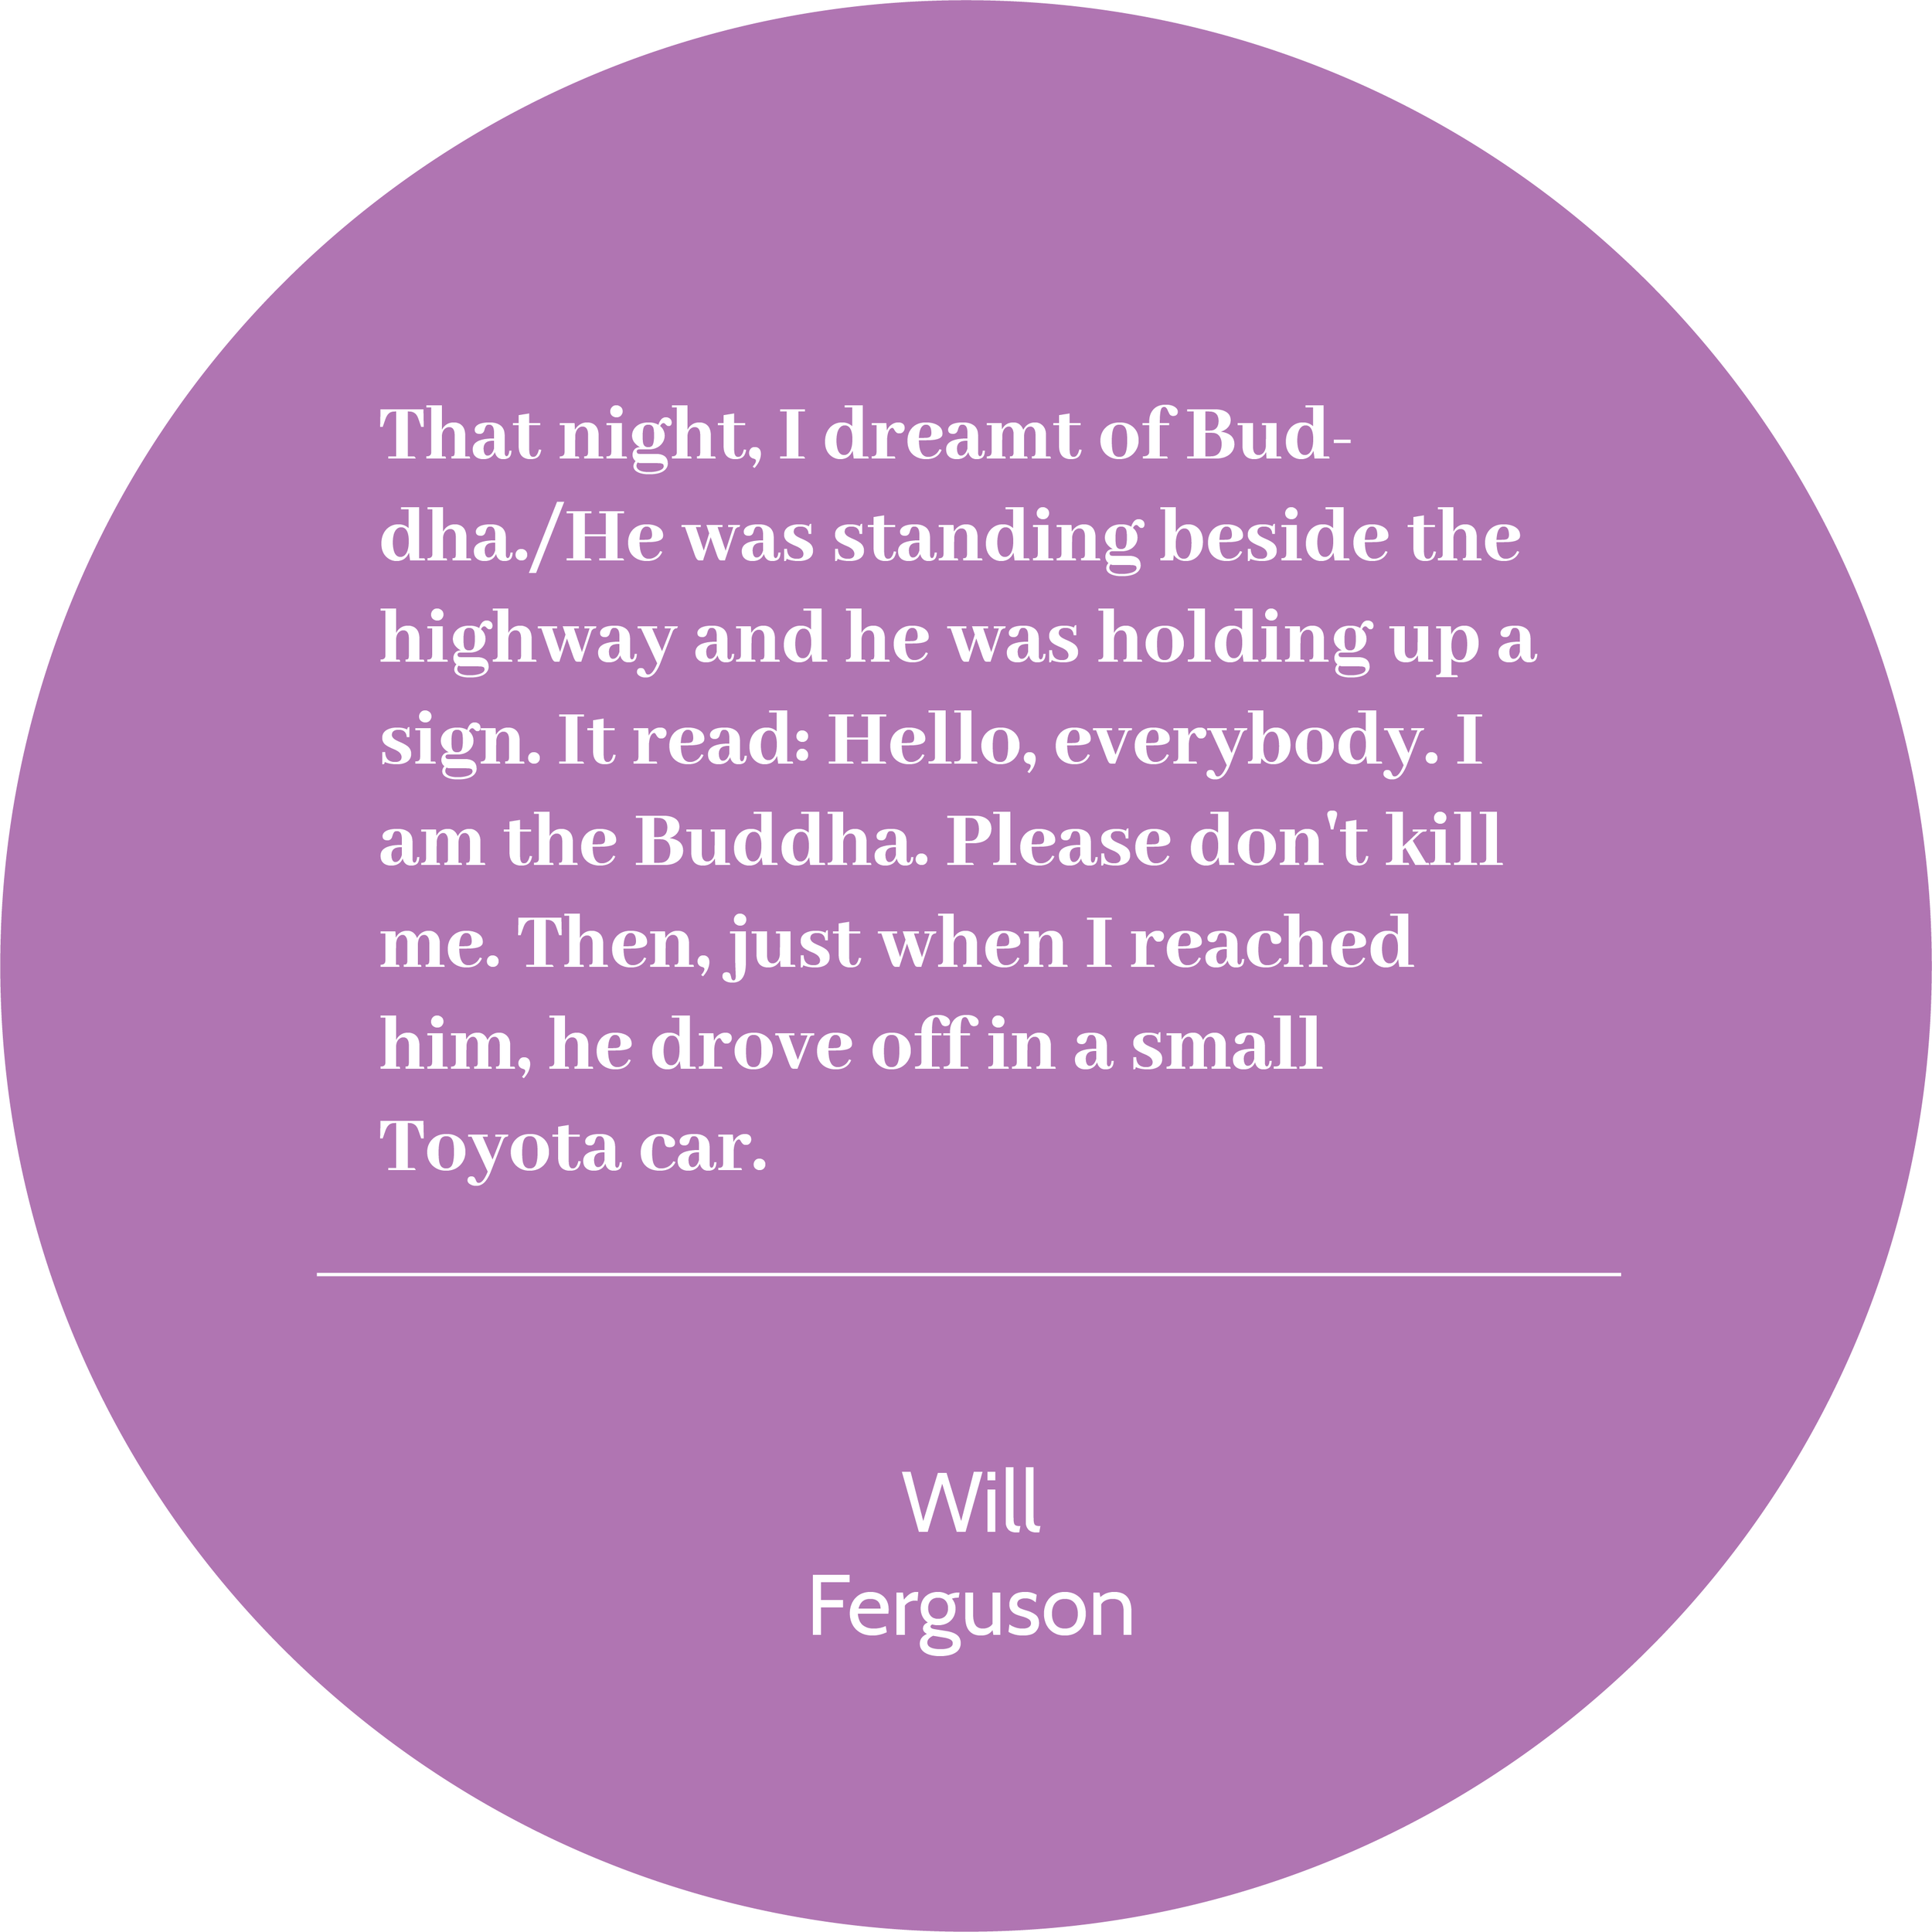 Will Ferguson quote 4 2019.04.24.png